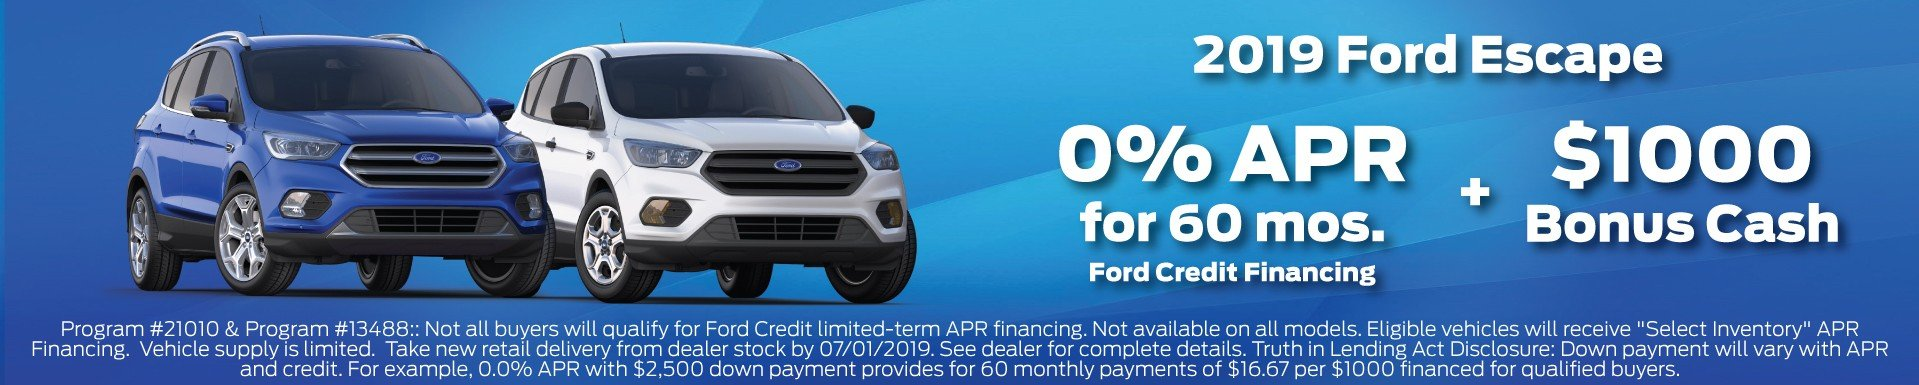 2019 Ford Escape Incentive 7-1-2019